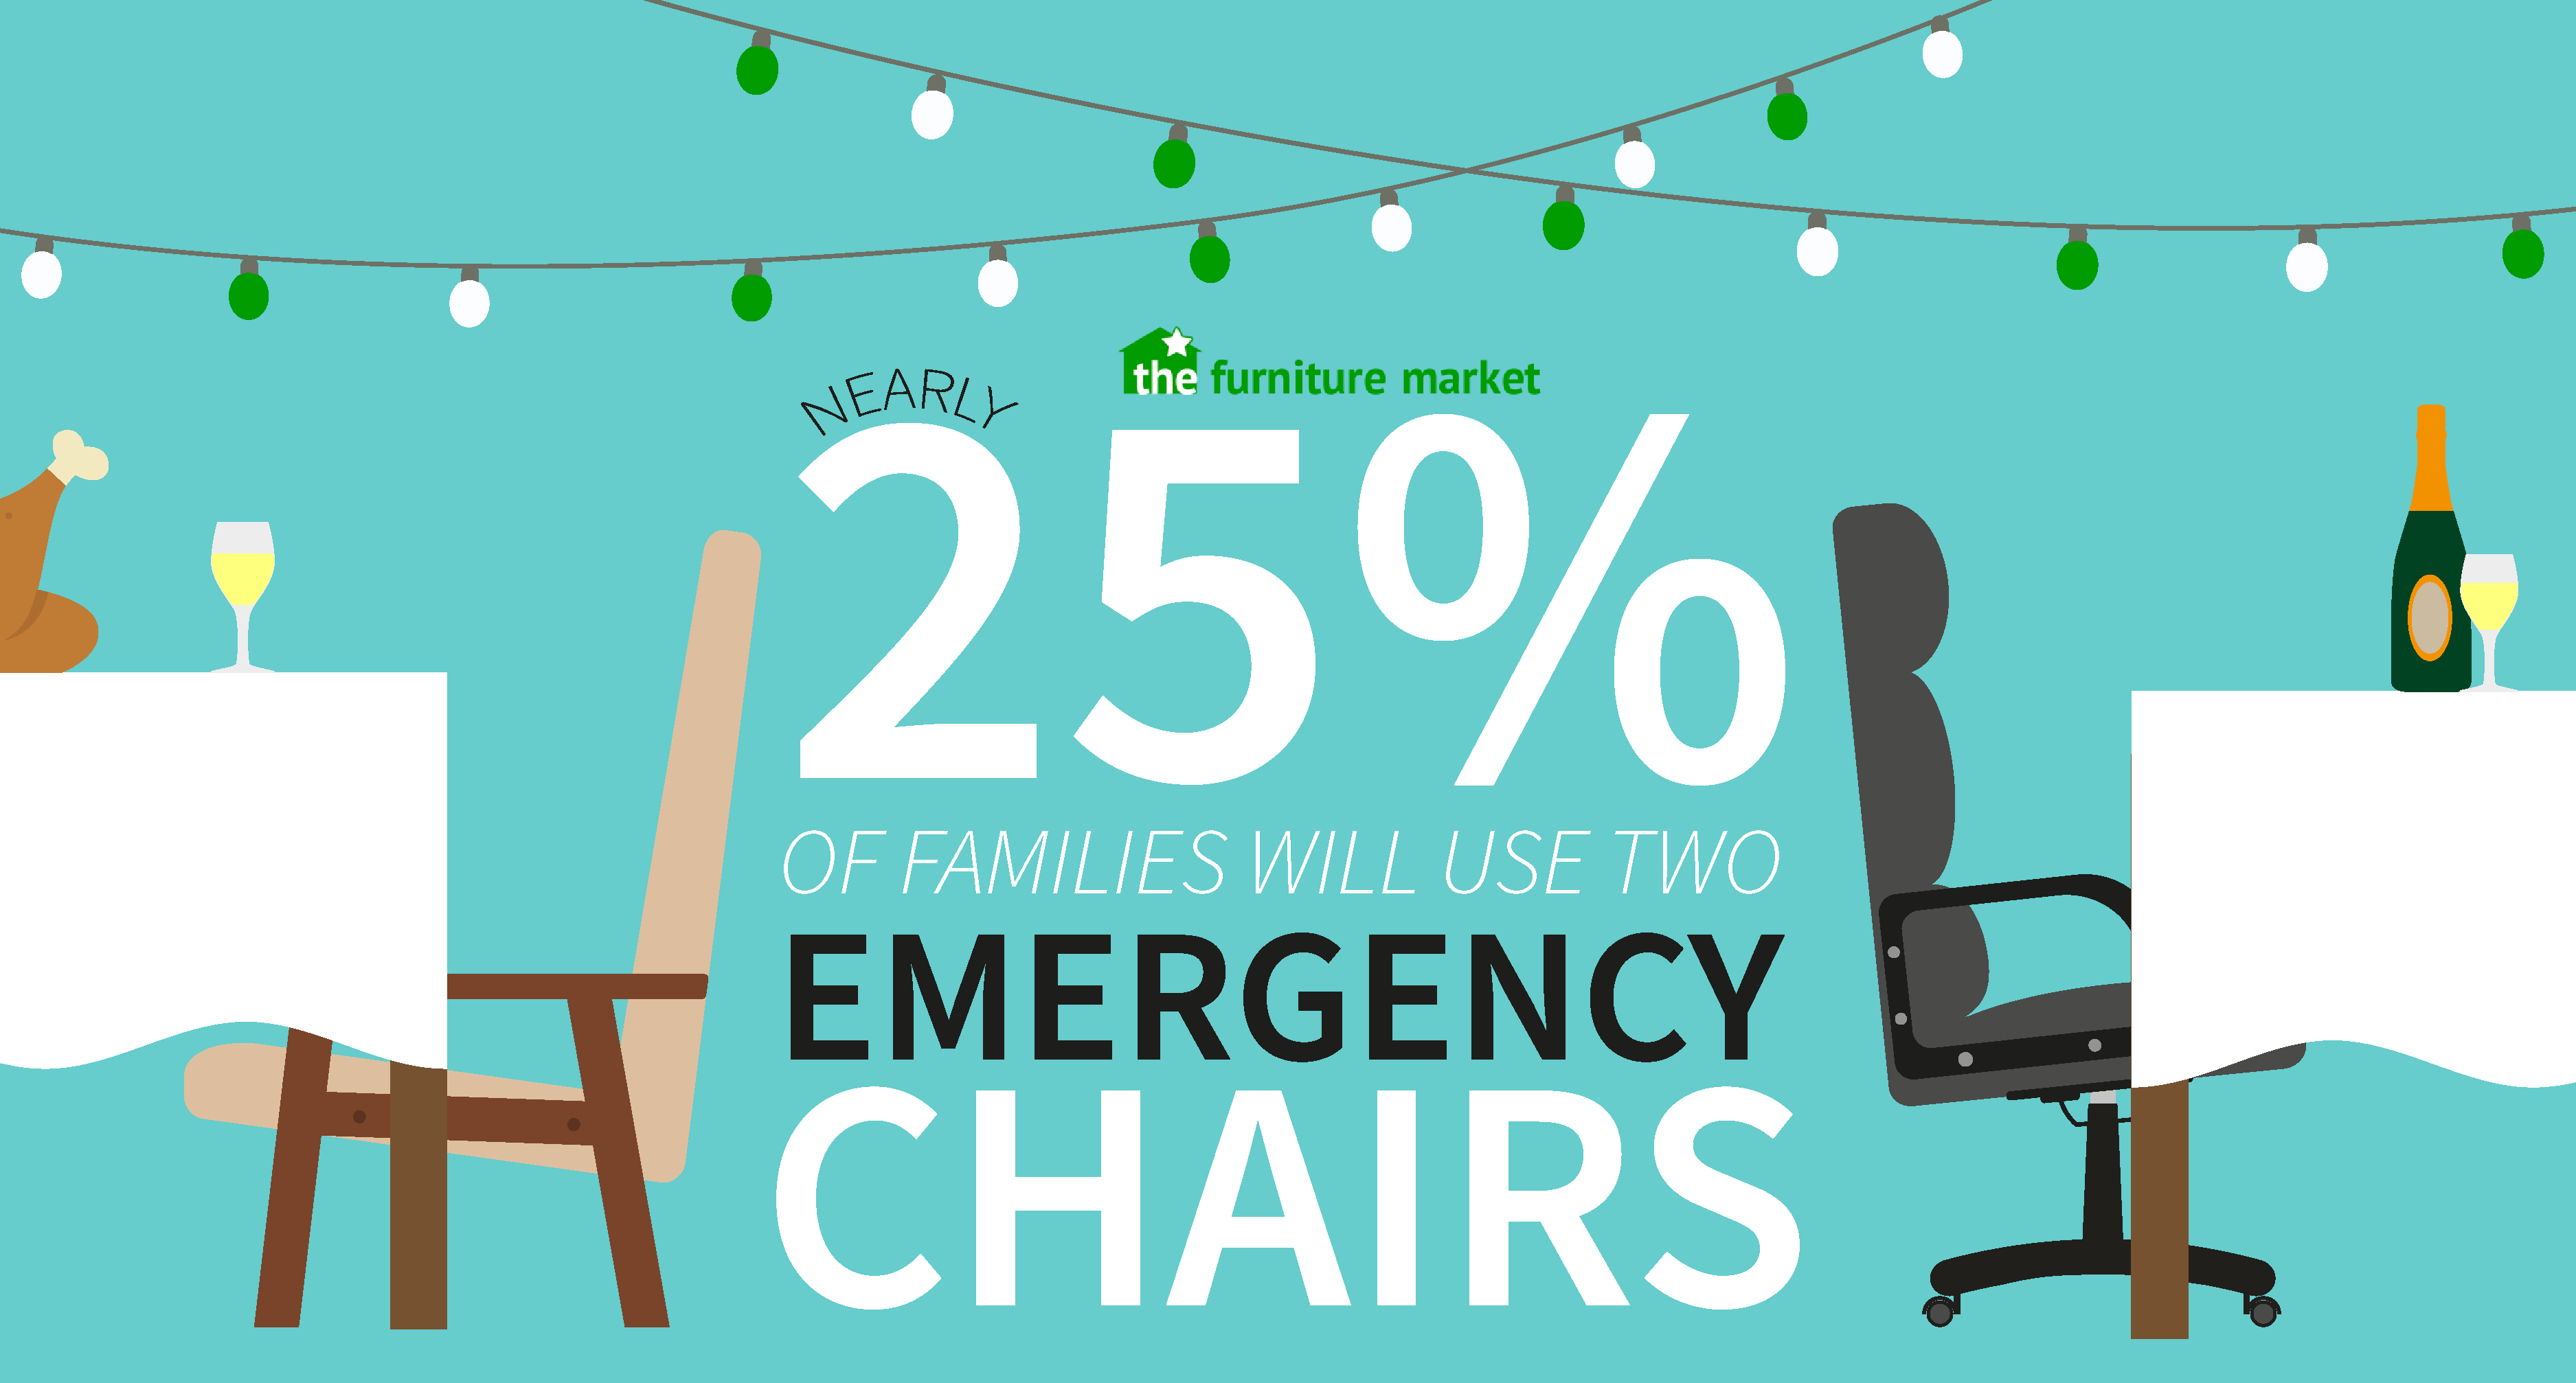 There will be 4 million Emergency Chairs used this Christmas